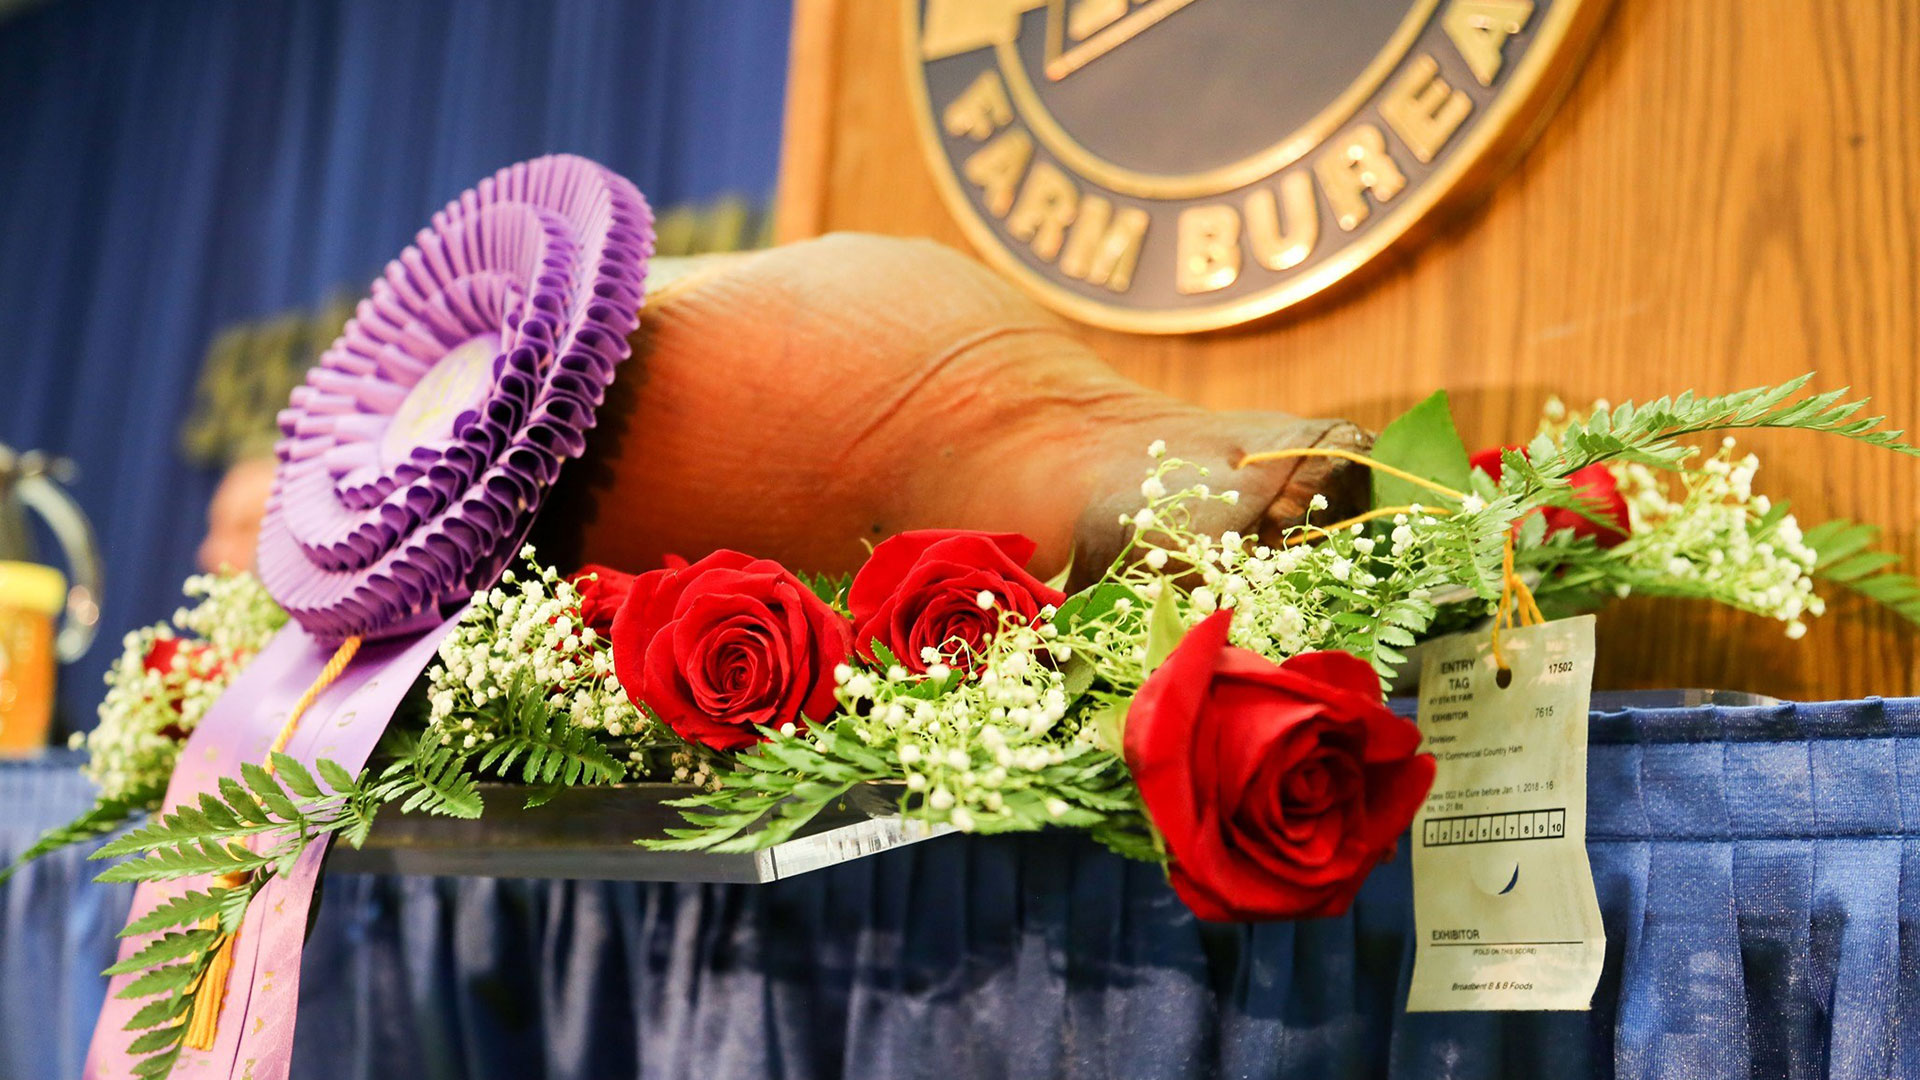 Kentucky Grand Champion Country Ham Auction